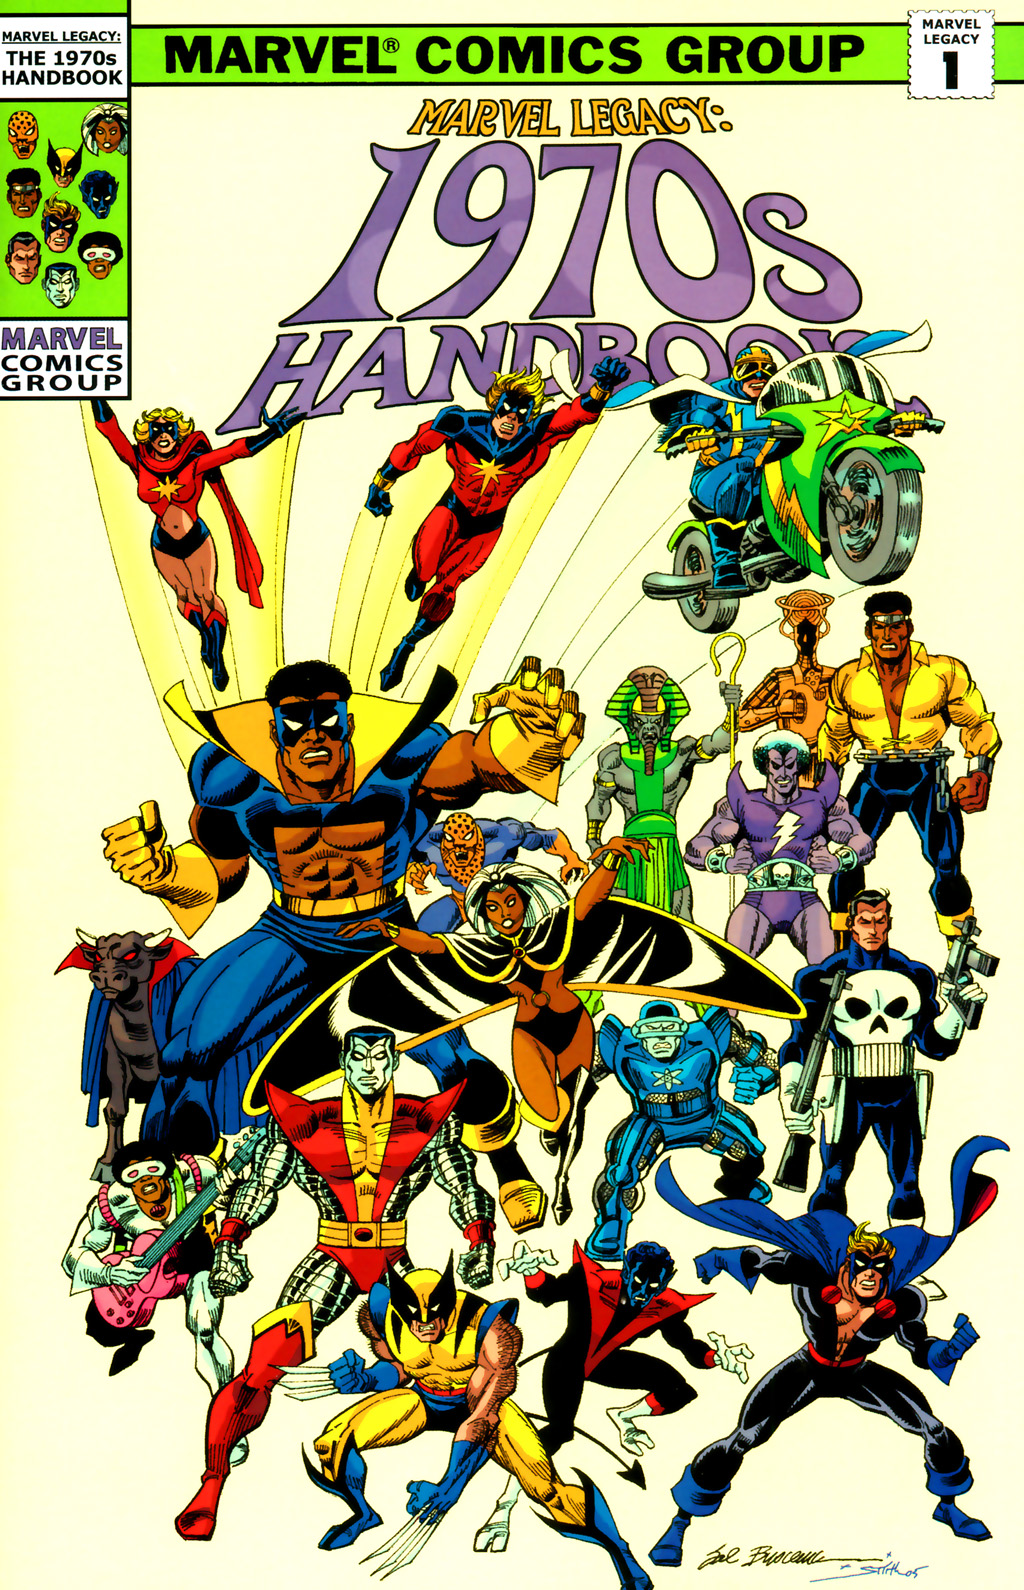 Marvel Legacy: The 1970s Handbook Vol 1